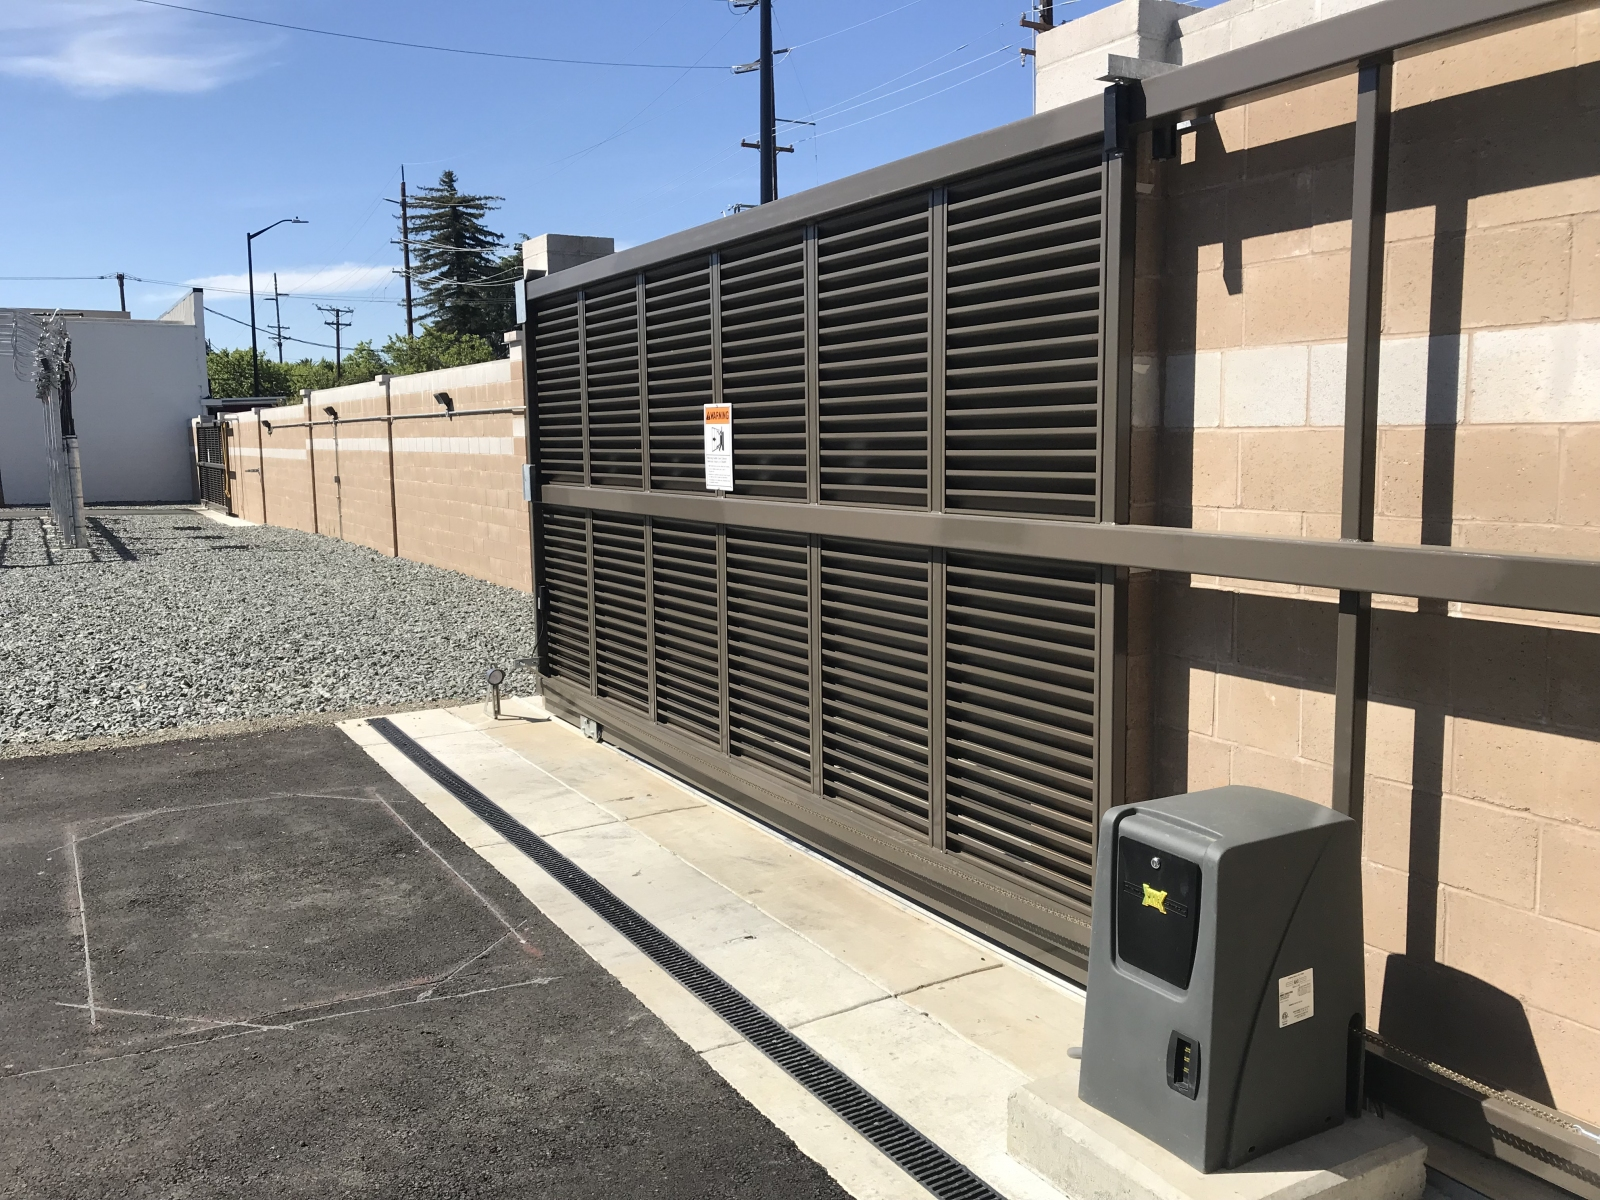 reu-oregon-street-substation-09